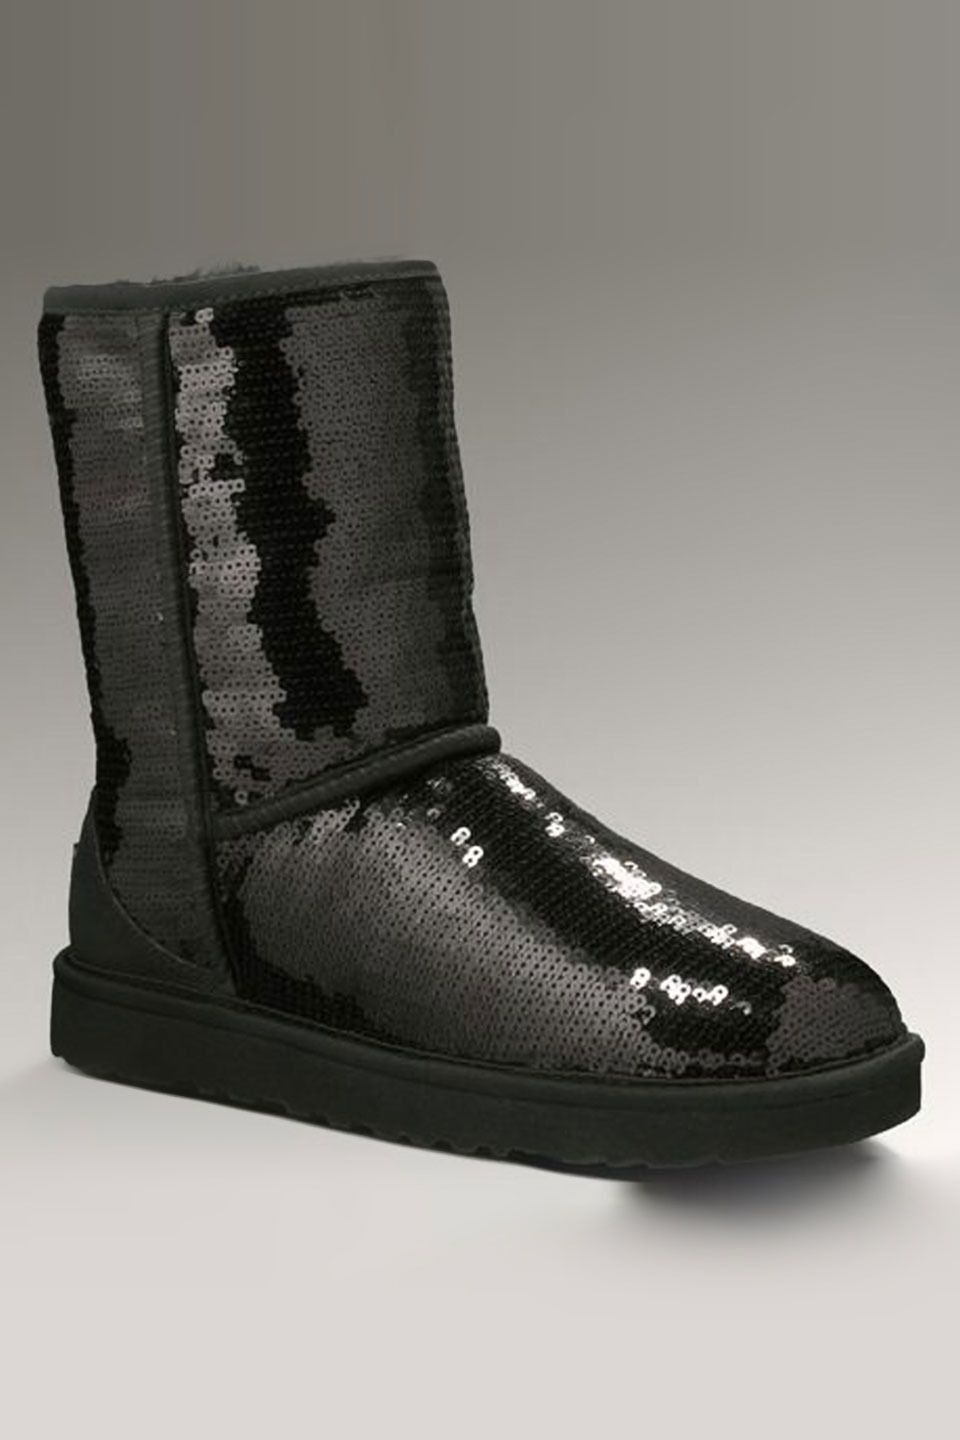 Ugg Classic Short Sparkles In Black - Beyond the Rack